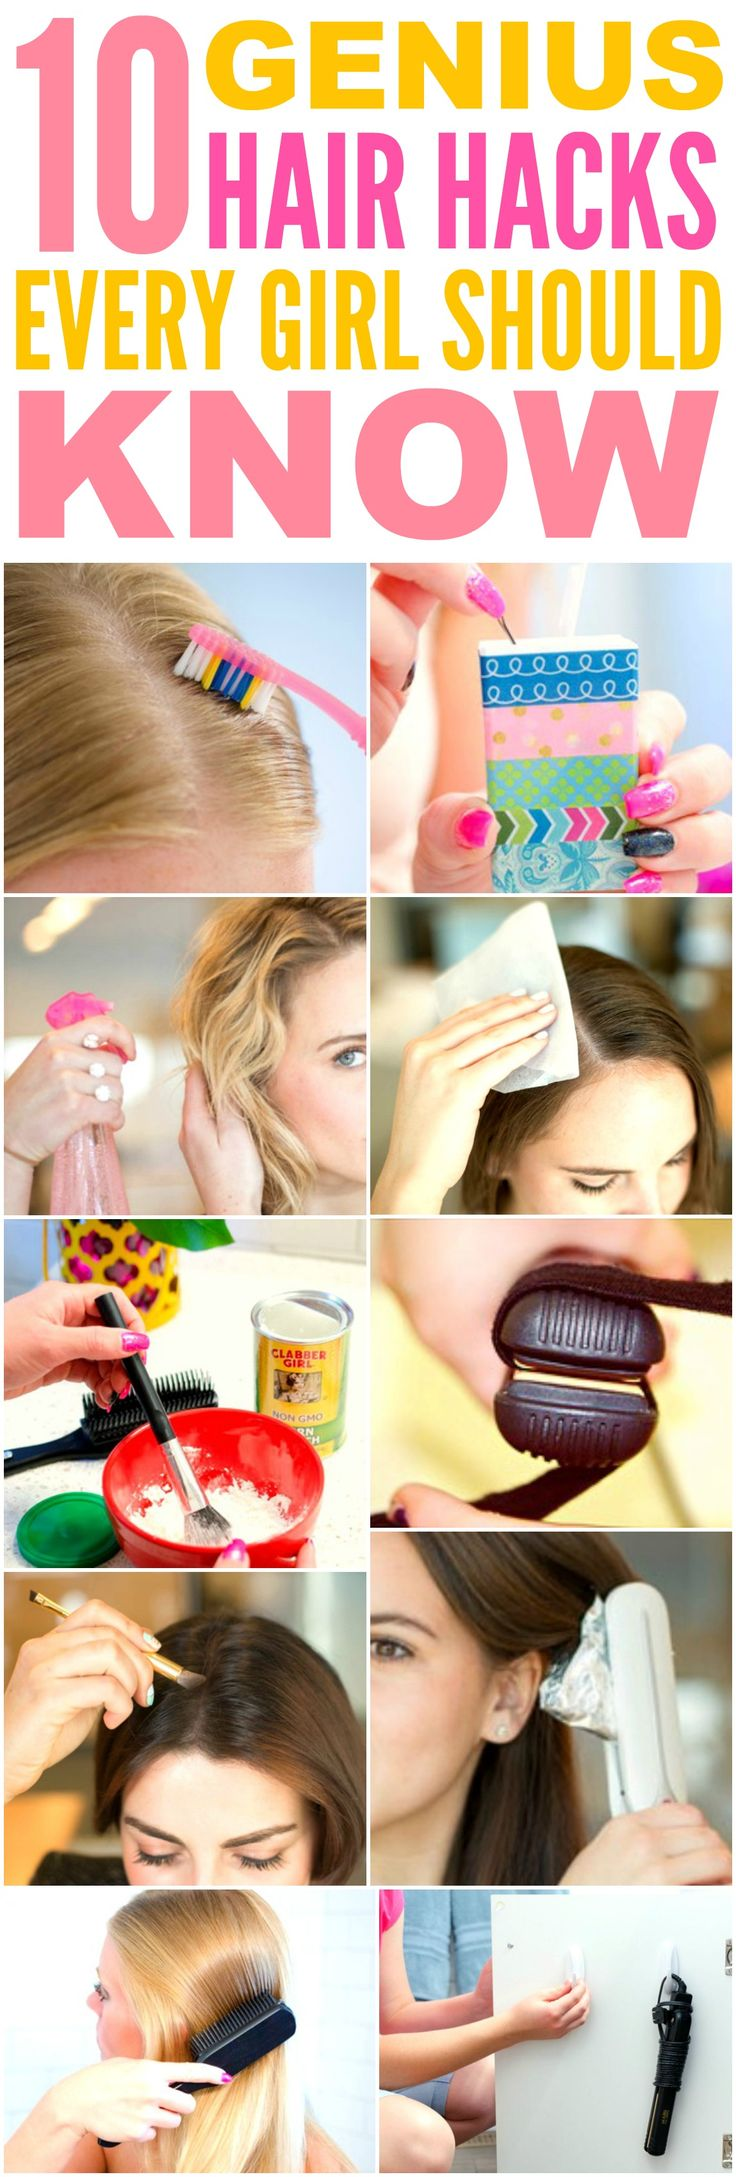 These 10 genius hair hacks every girl should know are THE BEST! I'm so glad I found these AMAZING tips! Now I have some awesome ways to save time and get cute hair! Definitely pinning!